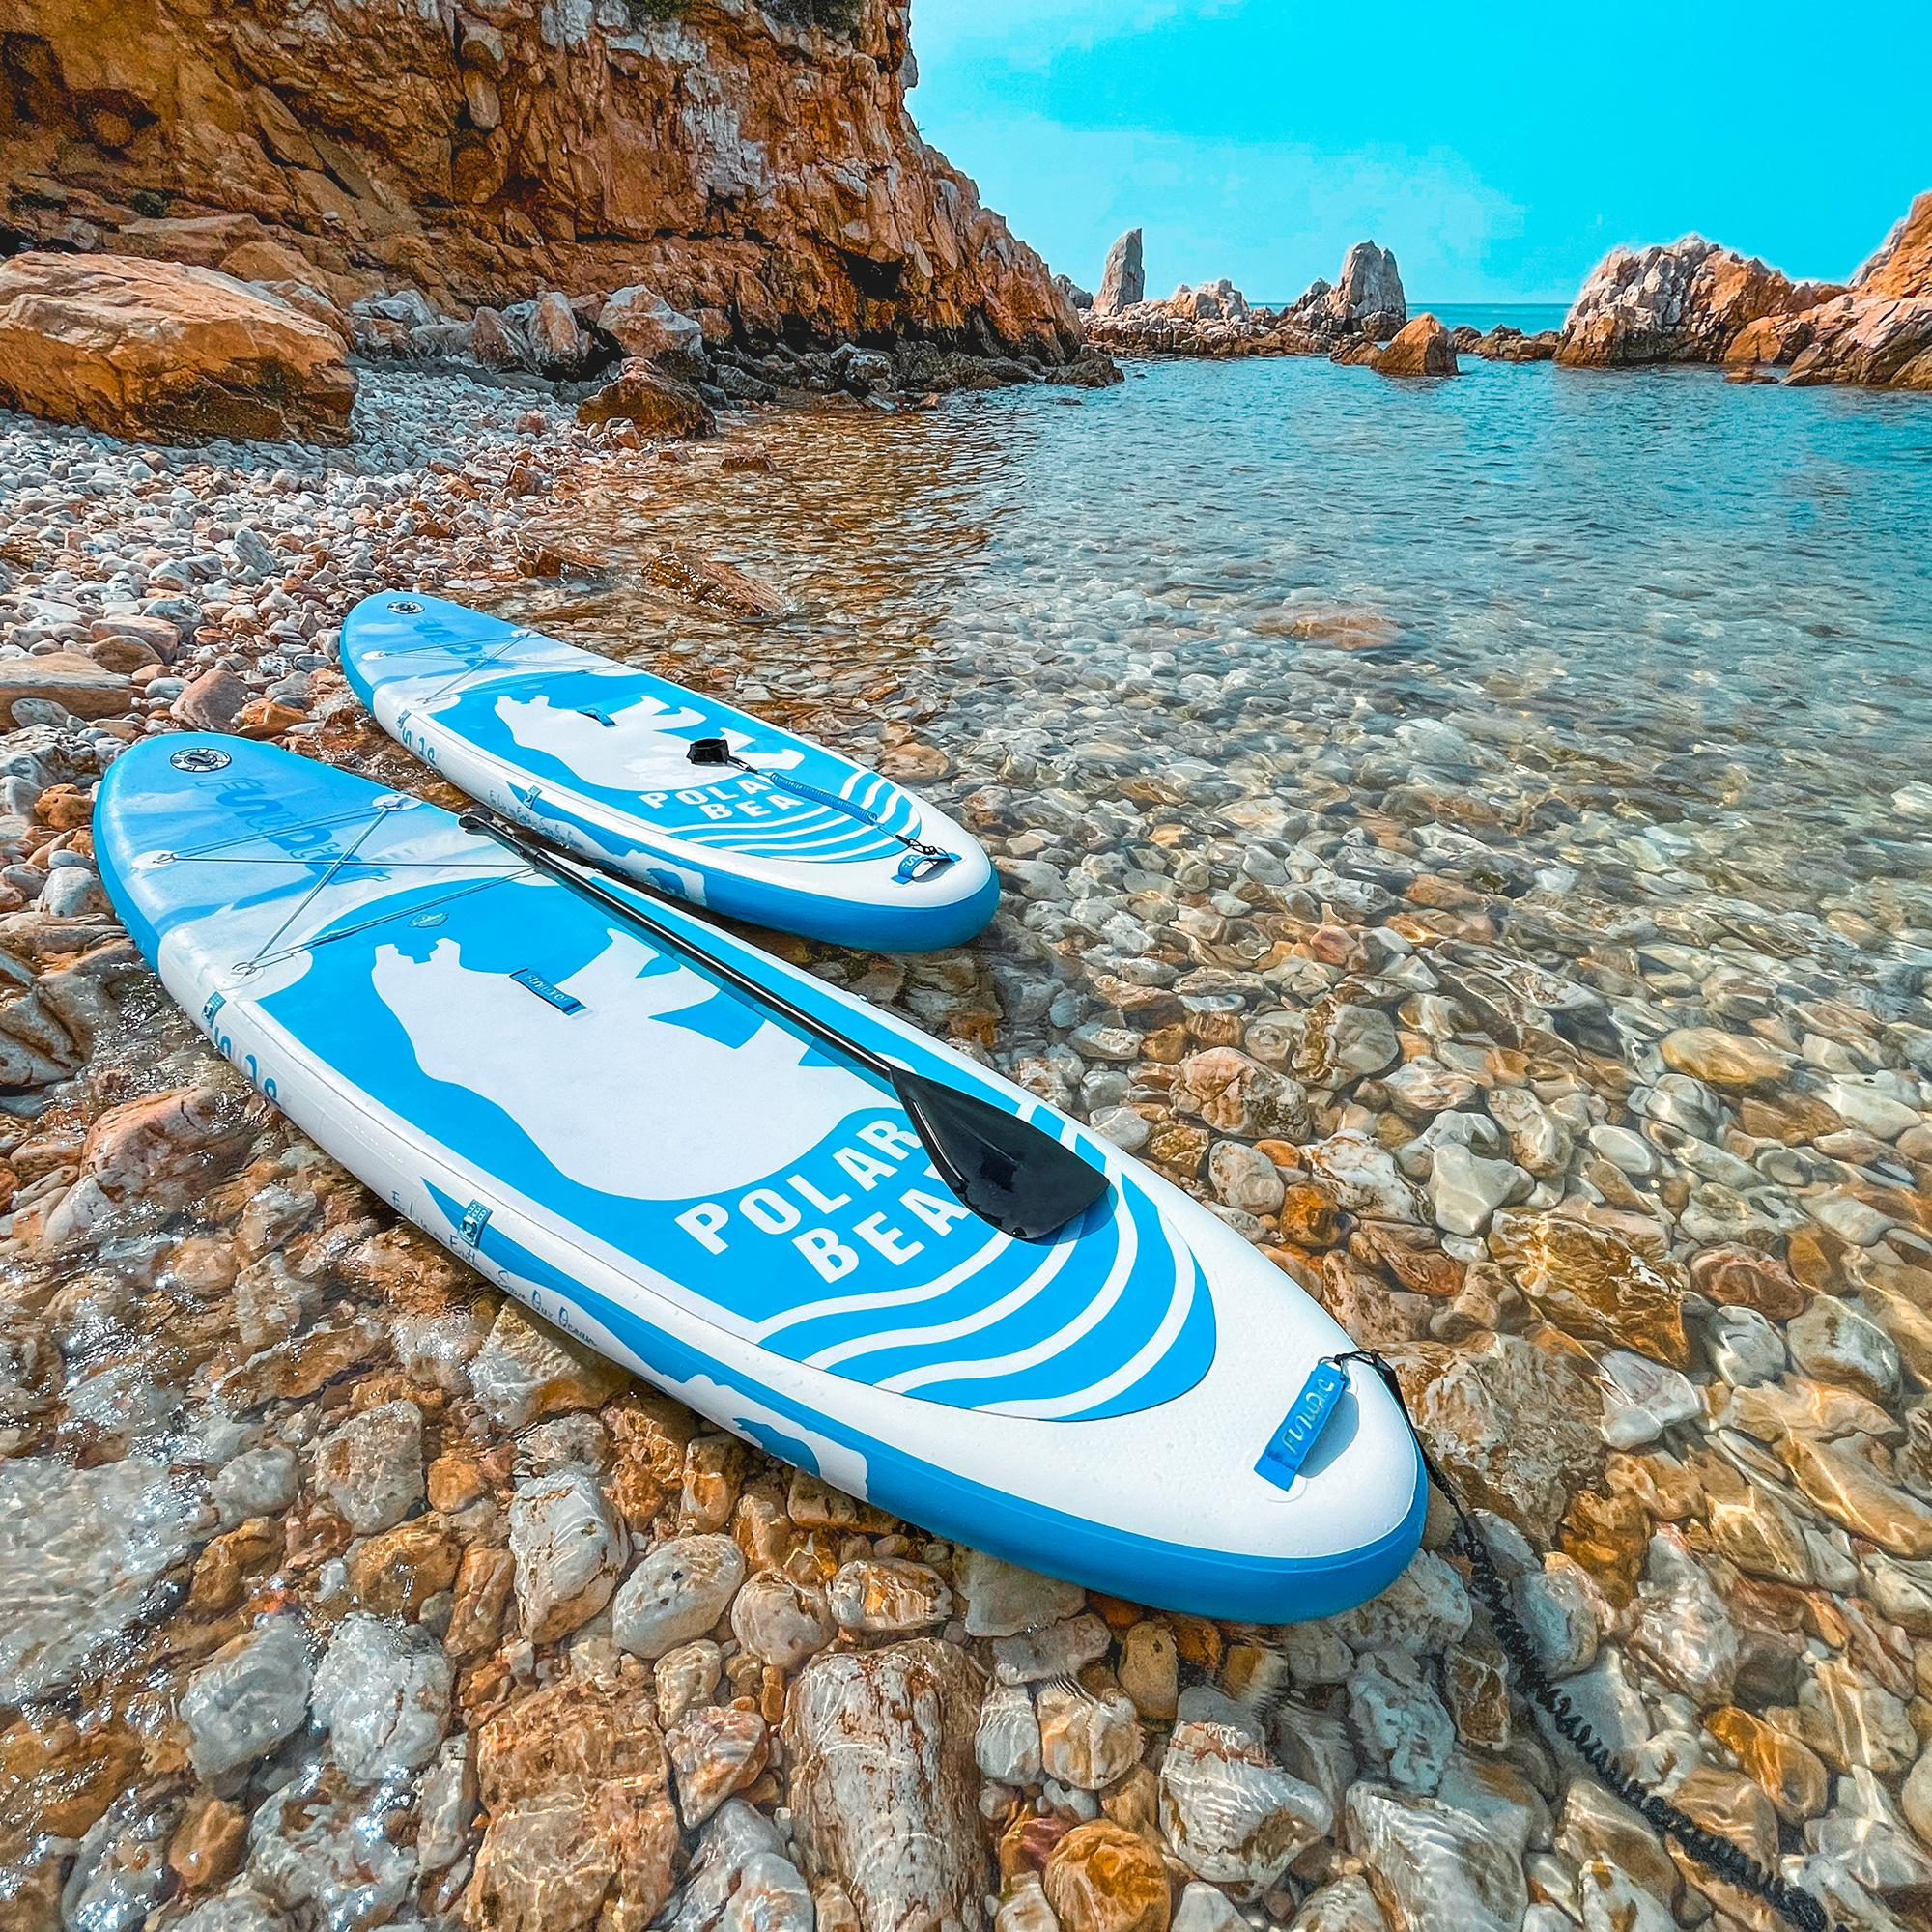 dotshio_polar_bear_paddle_sizes_sup_surf_board_inflatable_cheap_with_all_accessories_construction_sizes_measures_model_accessories_inlcuded_tech_details_sea_river_principal_best_pic